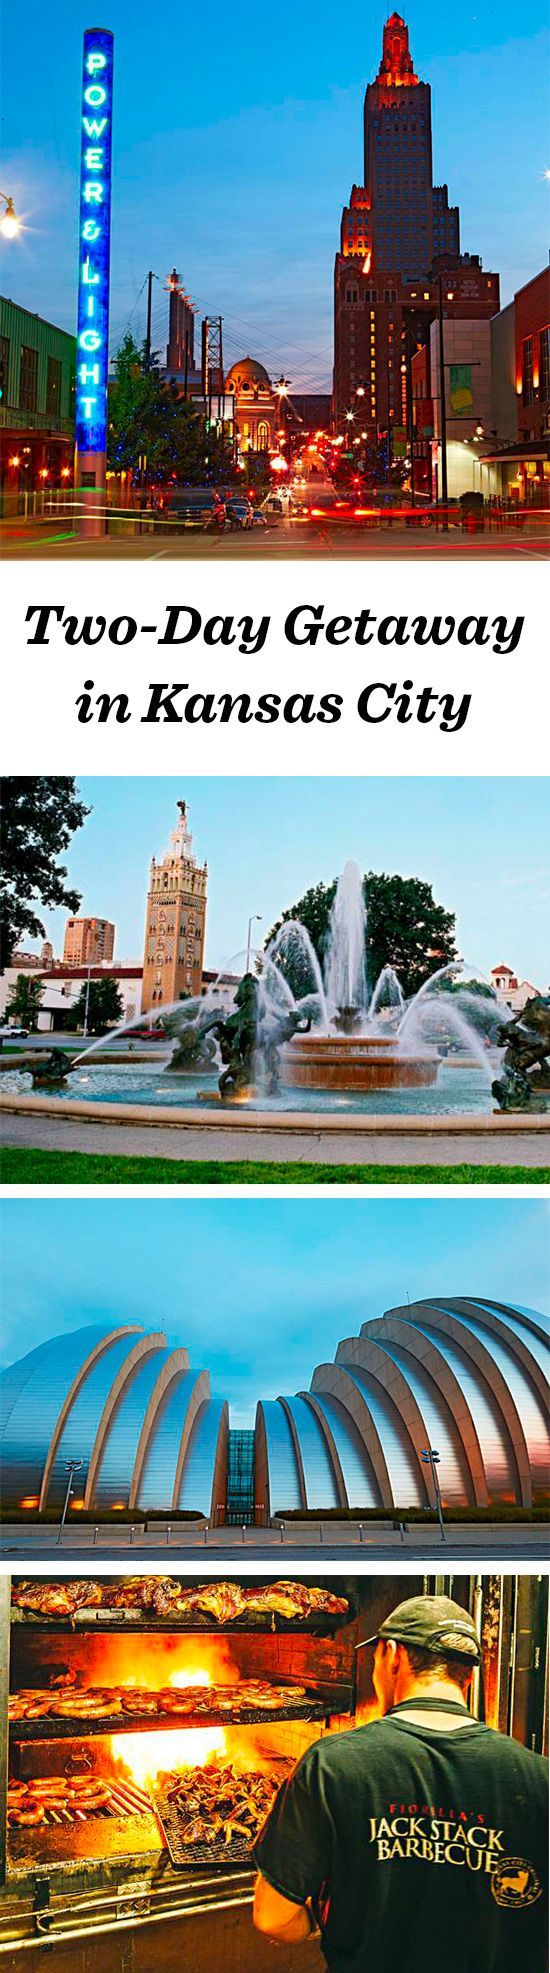 Barbecue, shopping, great museums and dueling pianos make for a lively weekend in Kansas City:  http://www.midwestliving.com/travel/missouri/kansas-city-missouri/two-day-family-getaway-kansas-city/ #kansascity #missouri